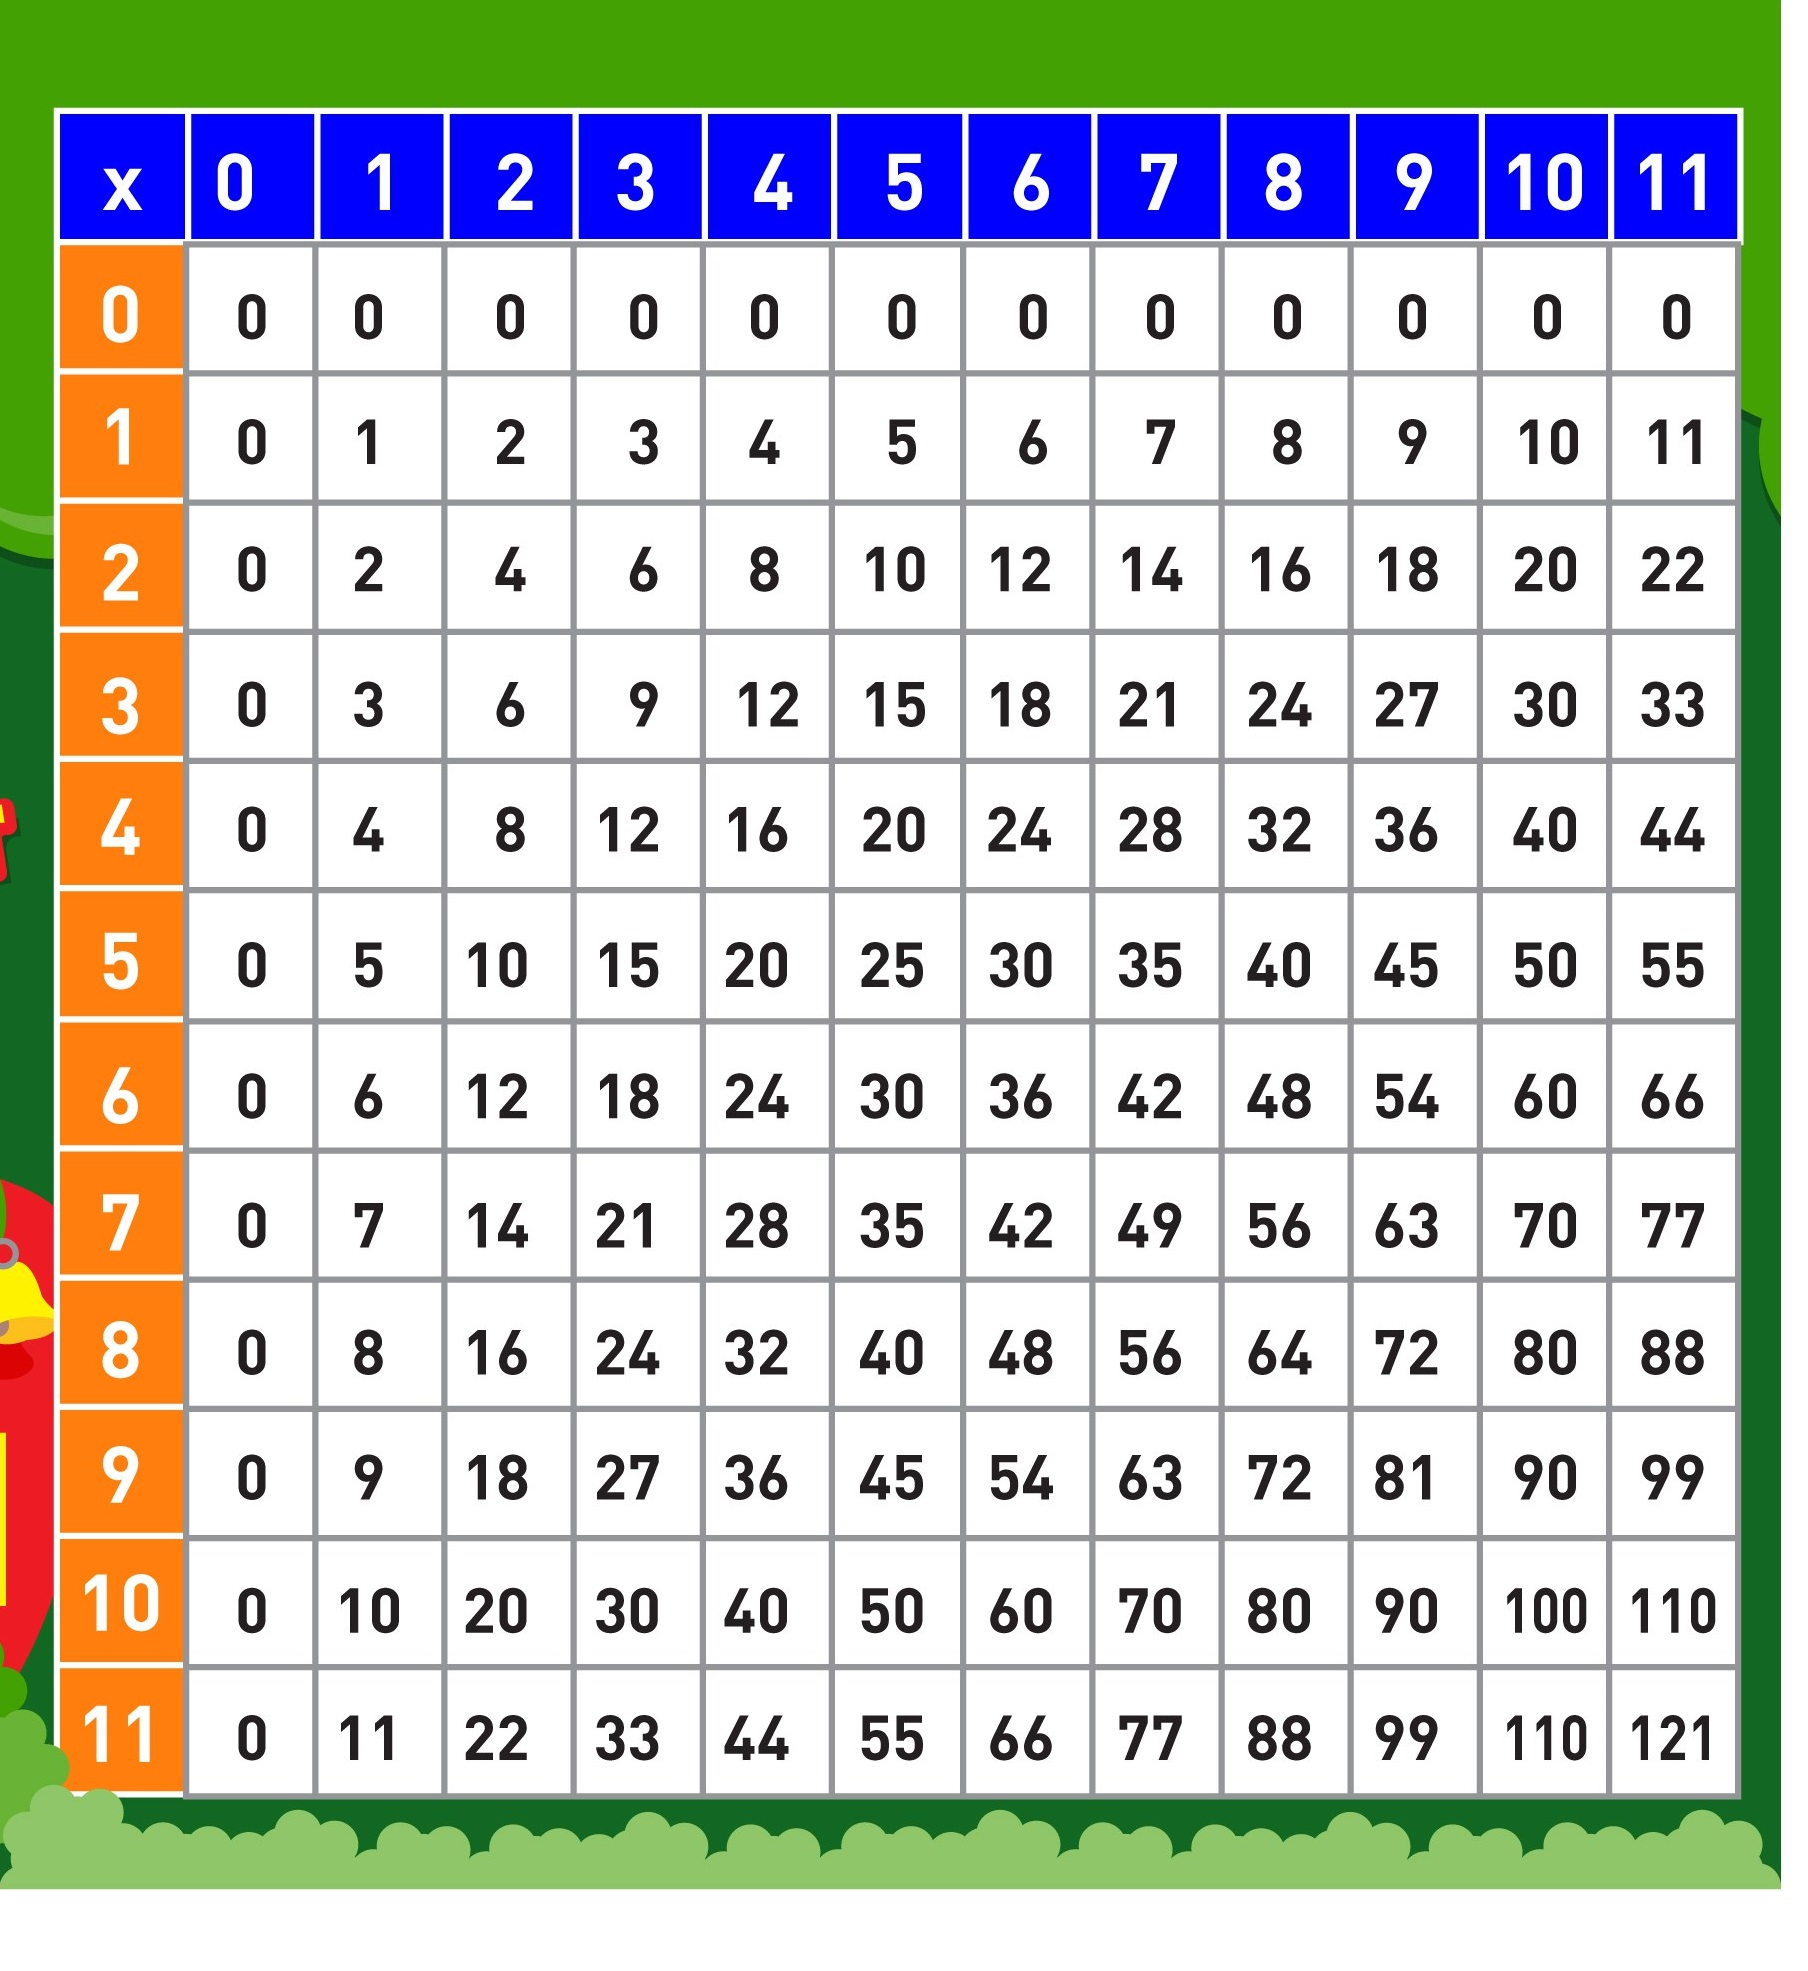 Multiplication table printables » multiplication-table-1-10-printable ...